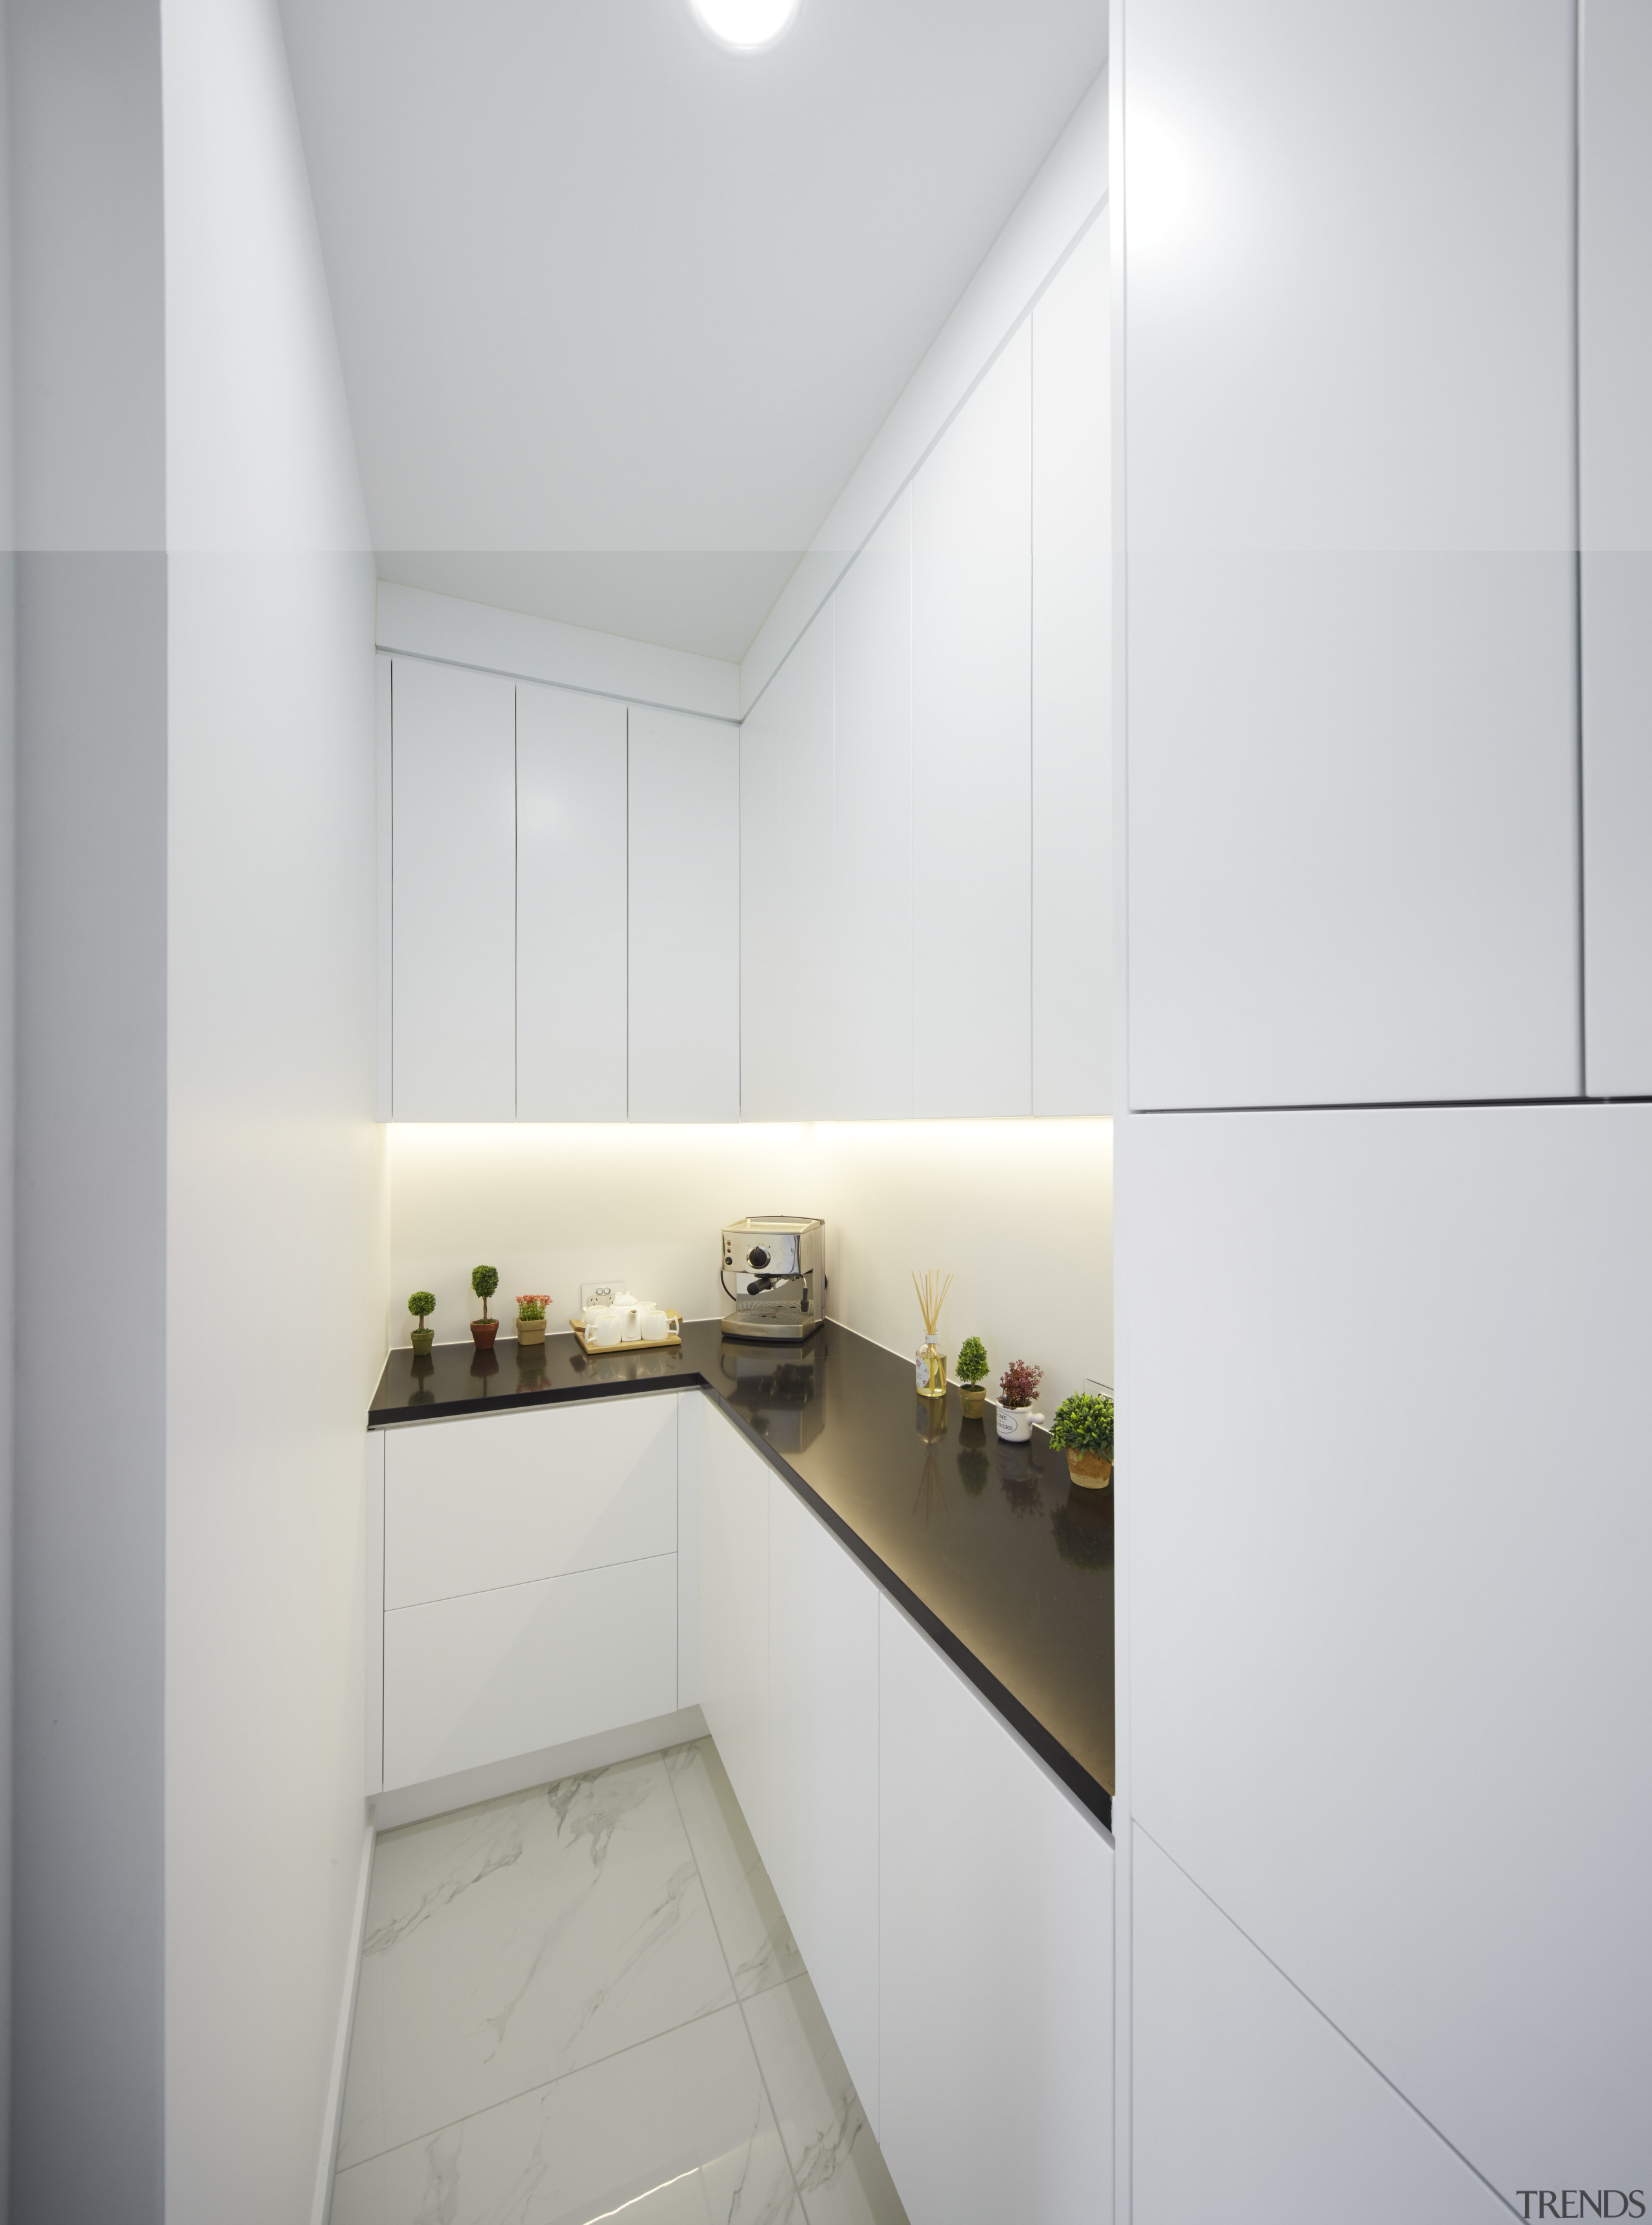 This kitchen always looks its best due to architecture, ceiling, daylighting, house, interior design, kitchen, product design, property, real estate, white